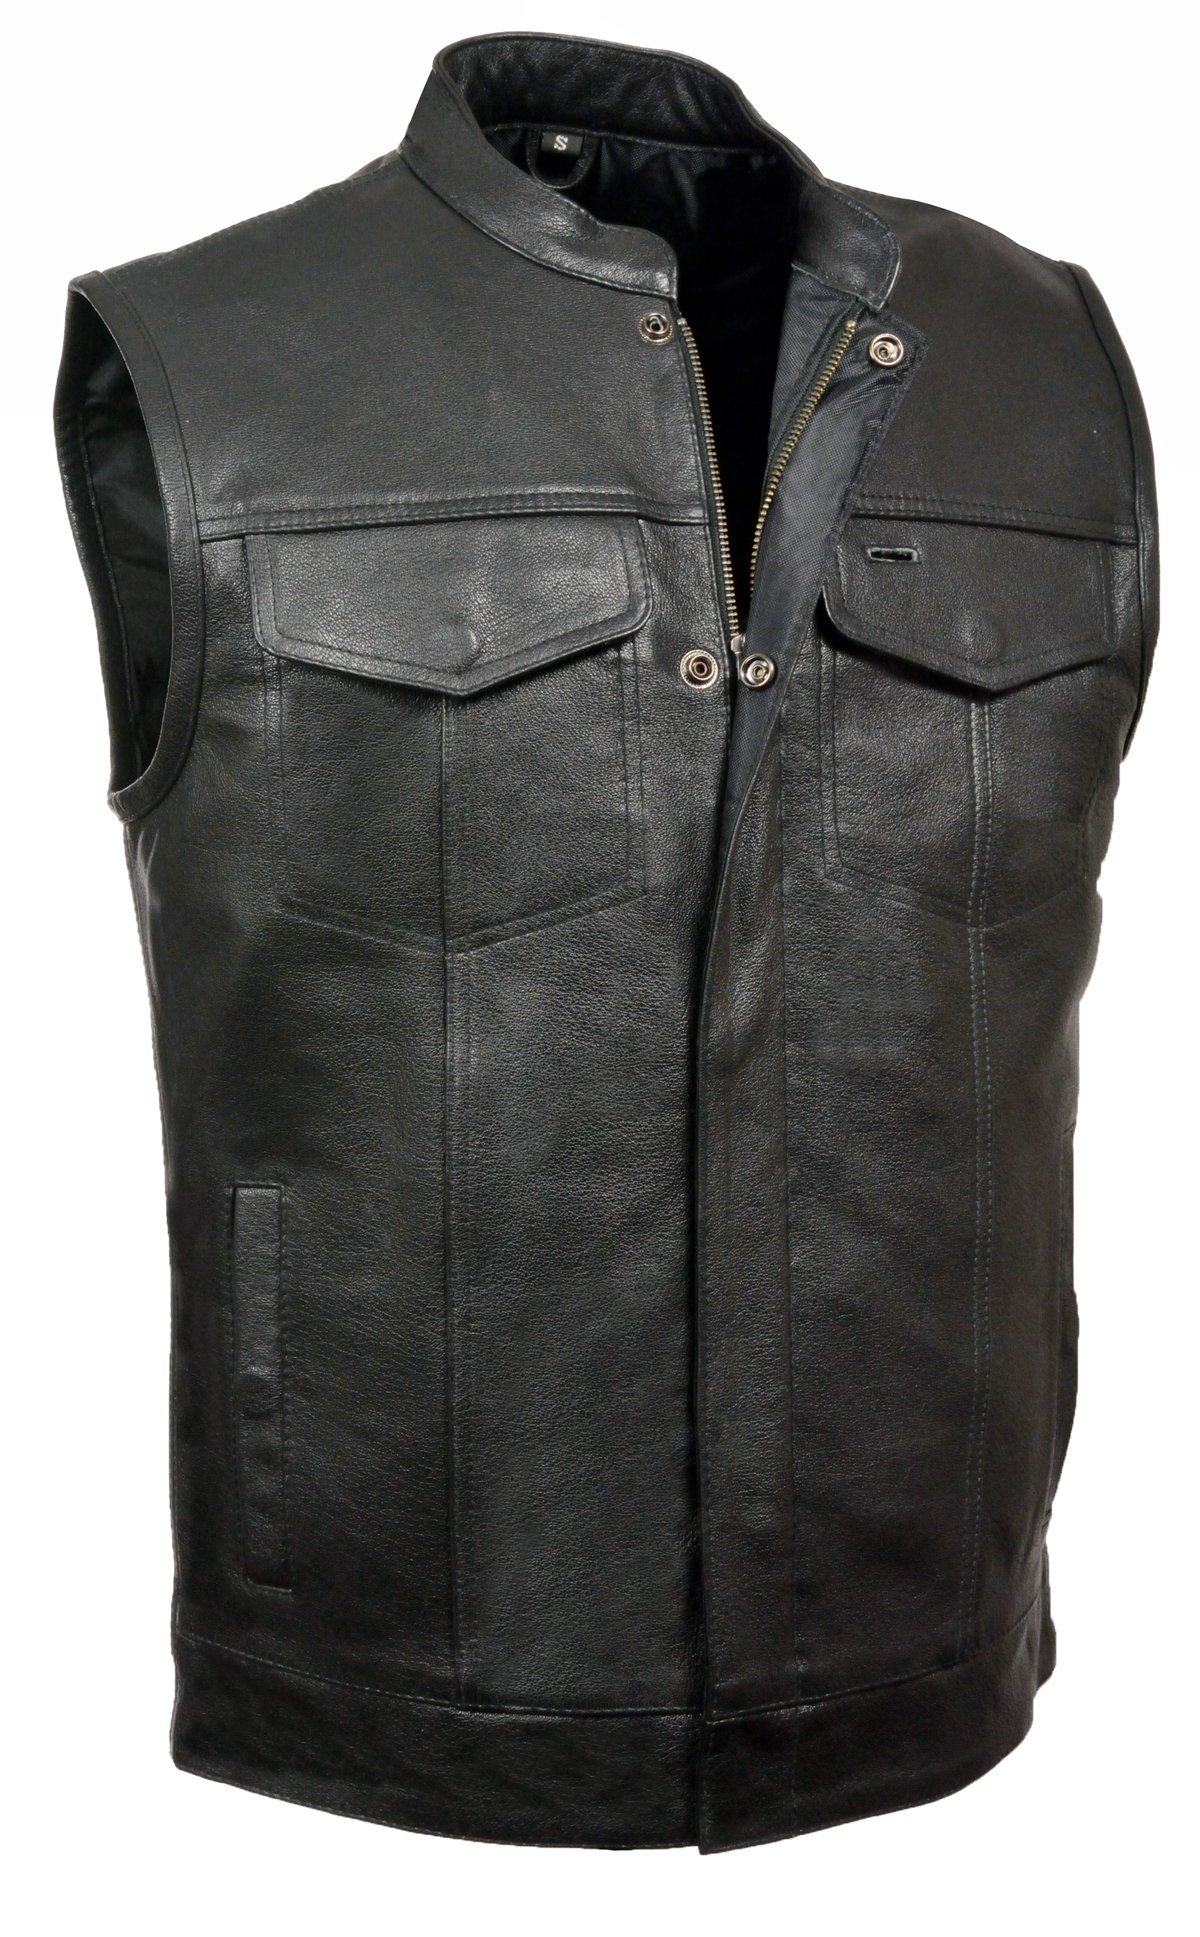 V3710 Club Vest with Front Zipper and open collar design